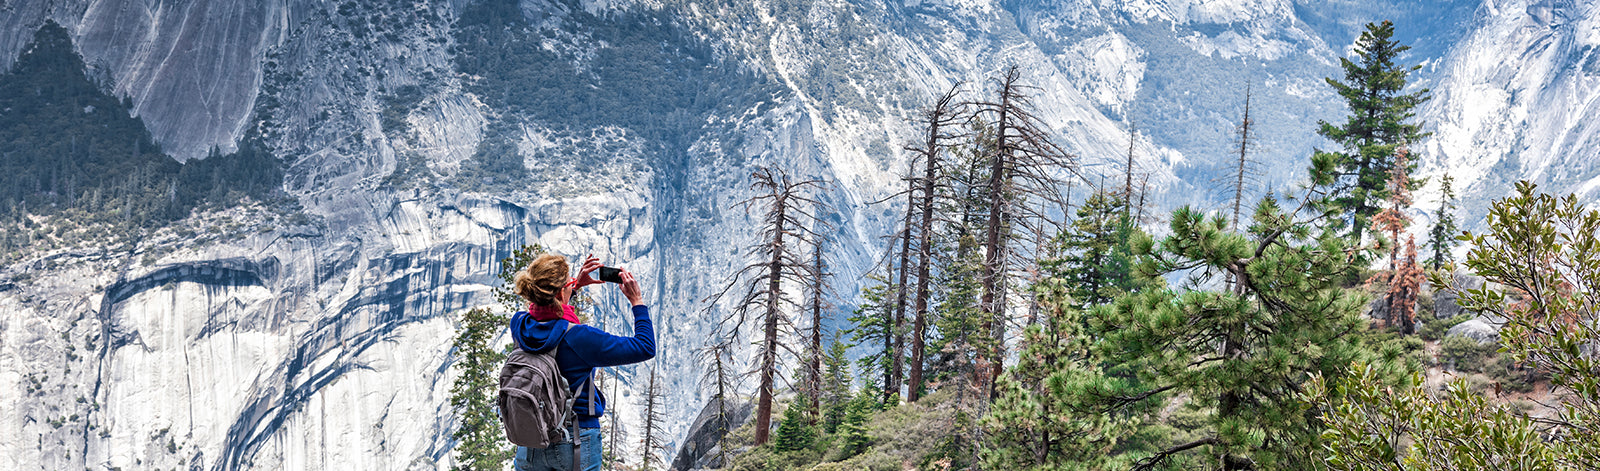 How long to hike John Muir trail